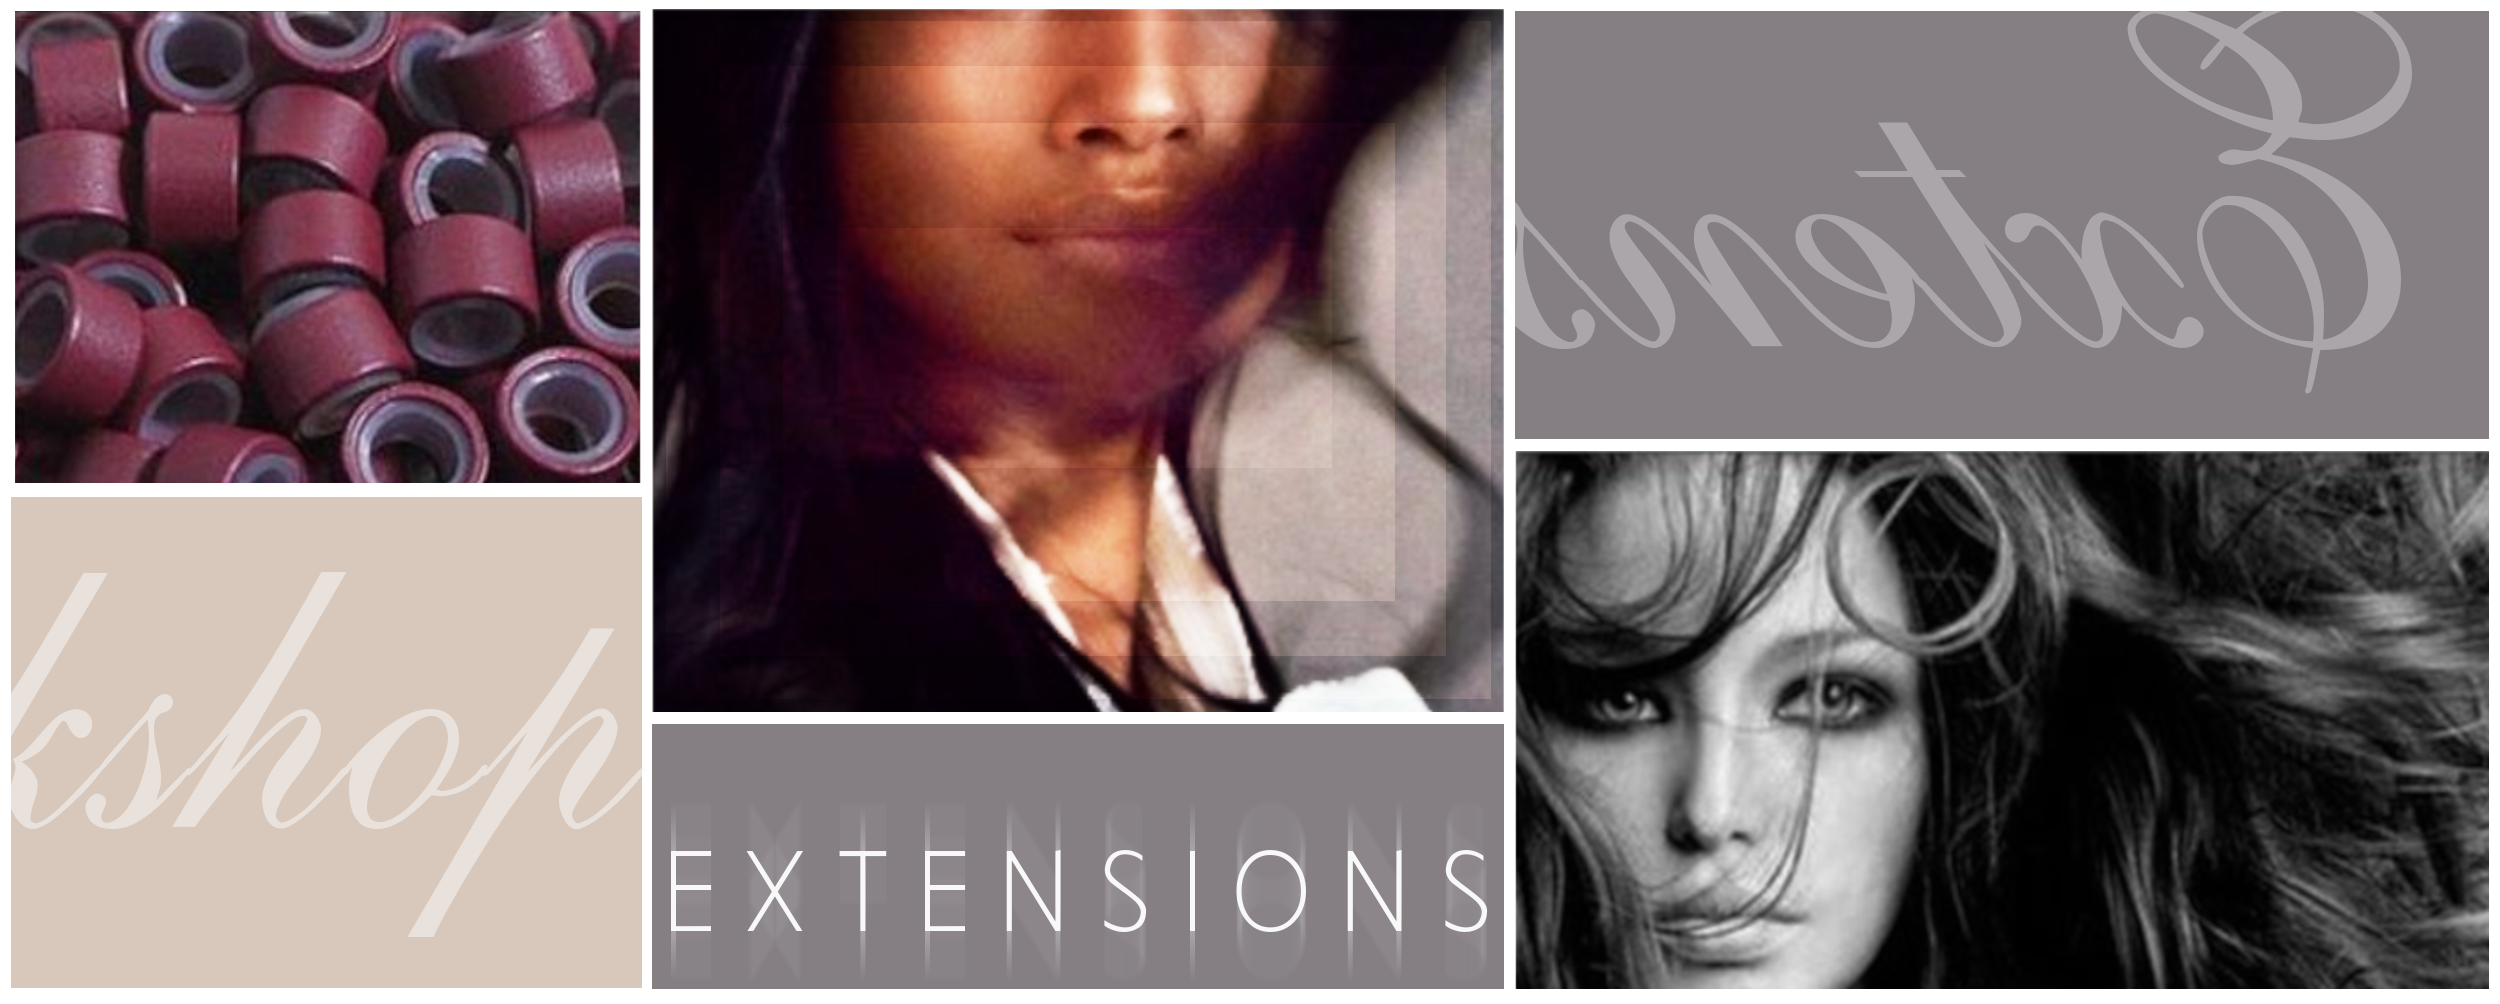 New York hair extensions classes are offered here at Luxury hair plus at our private studio